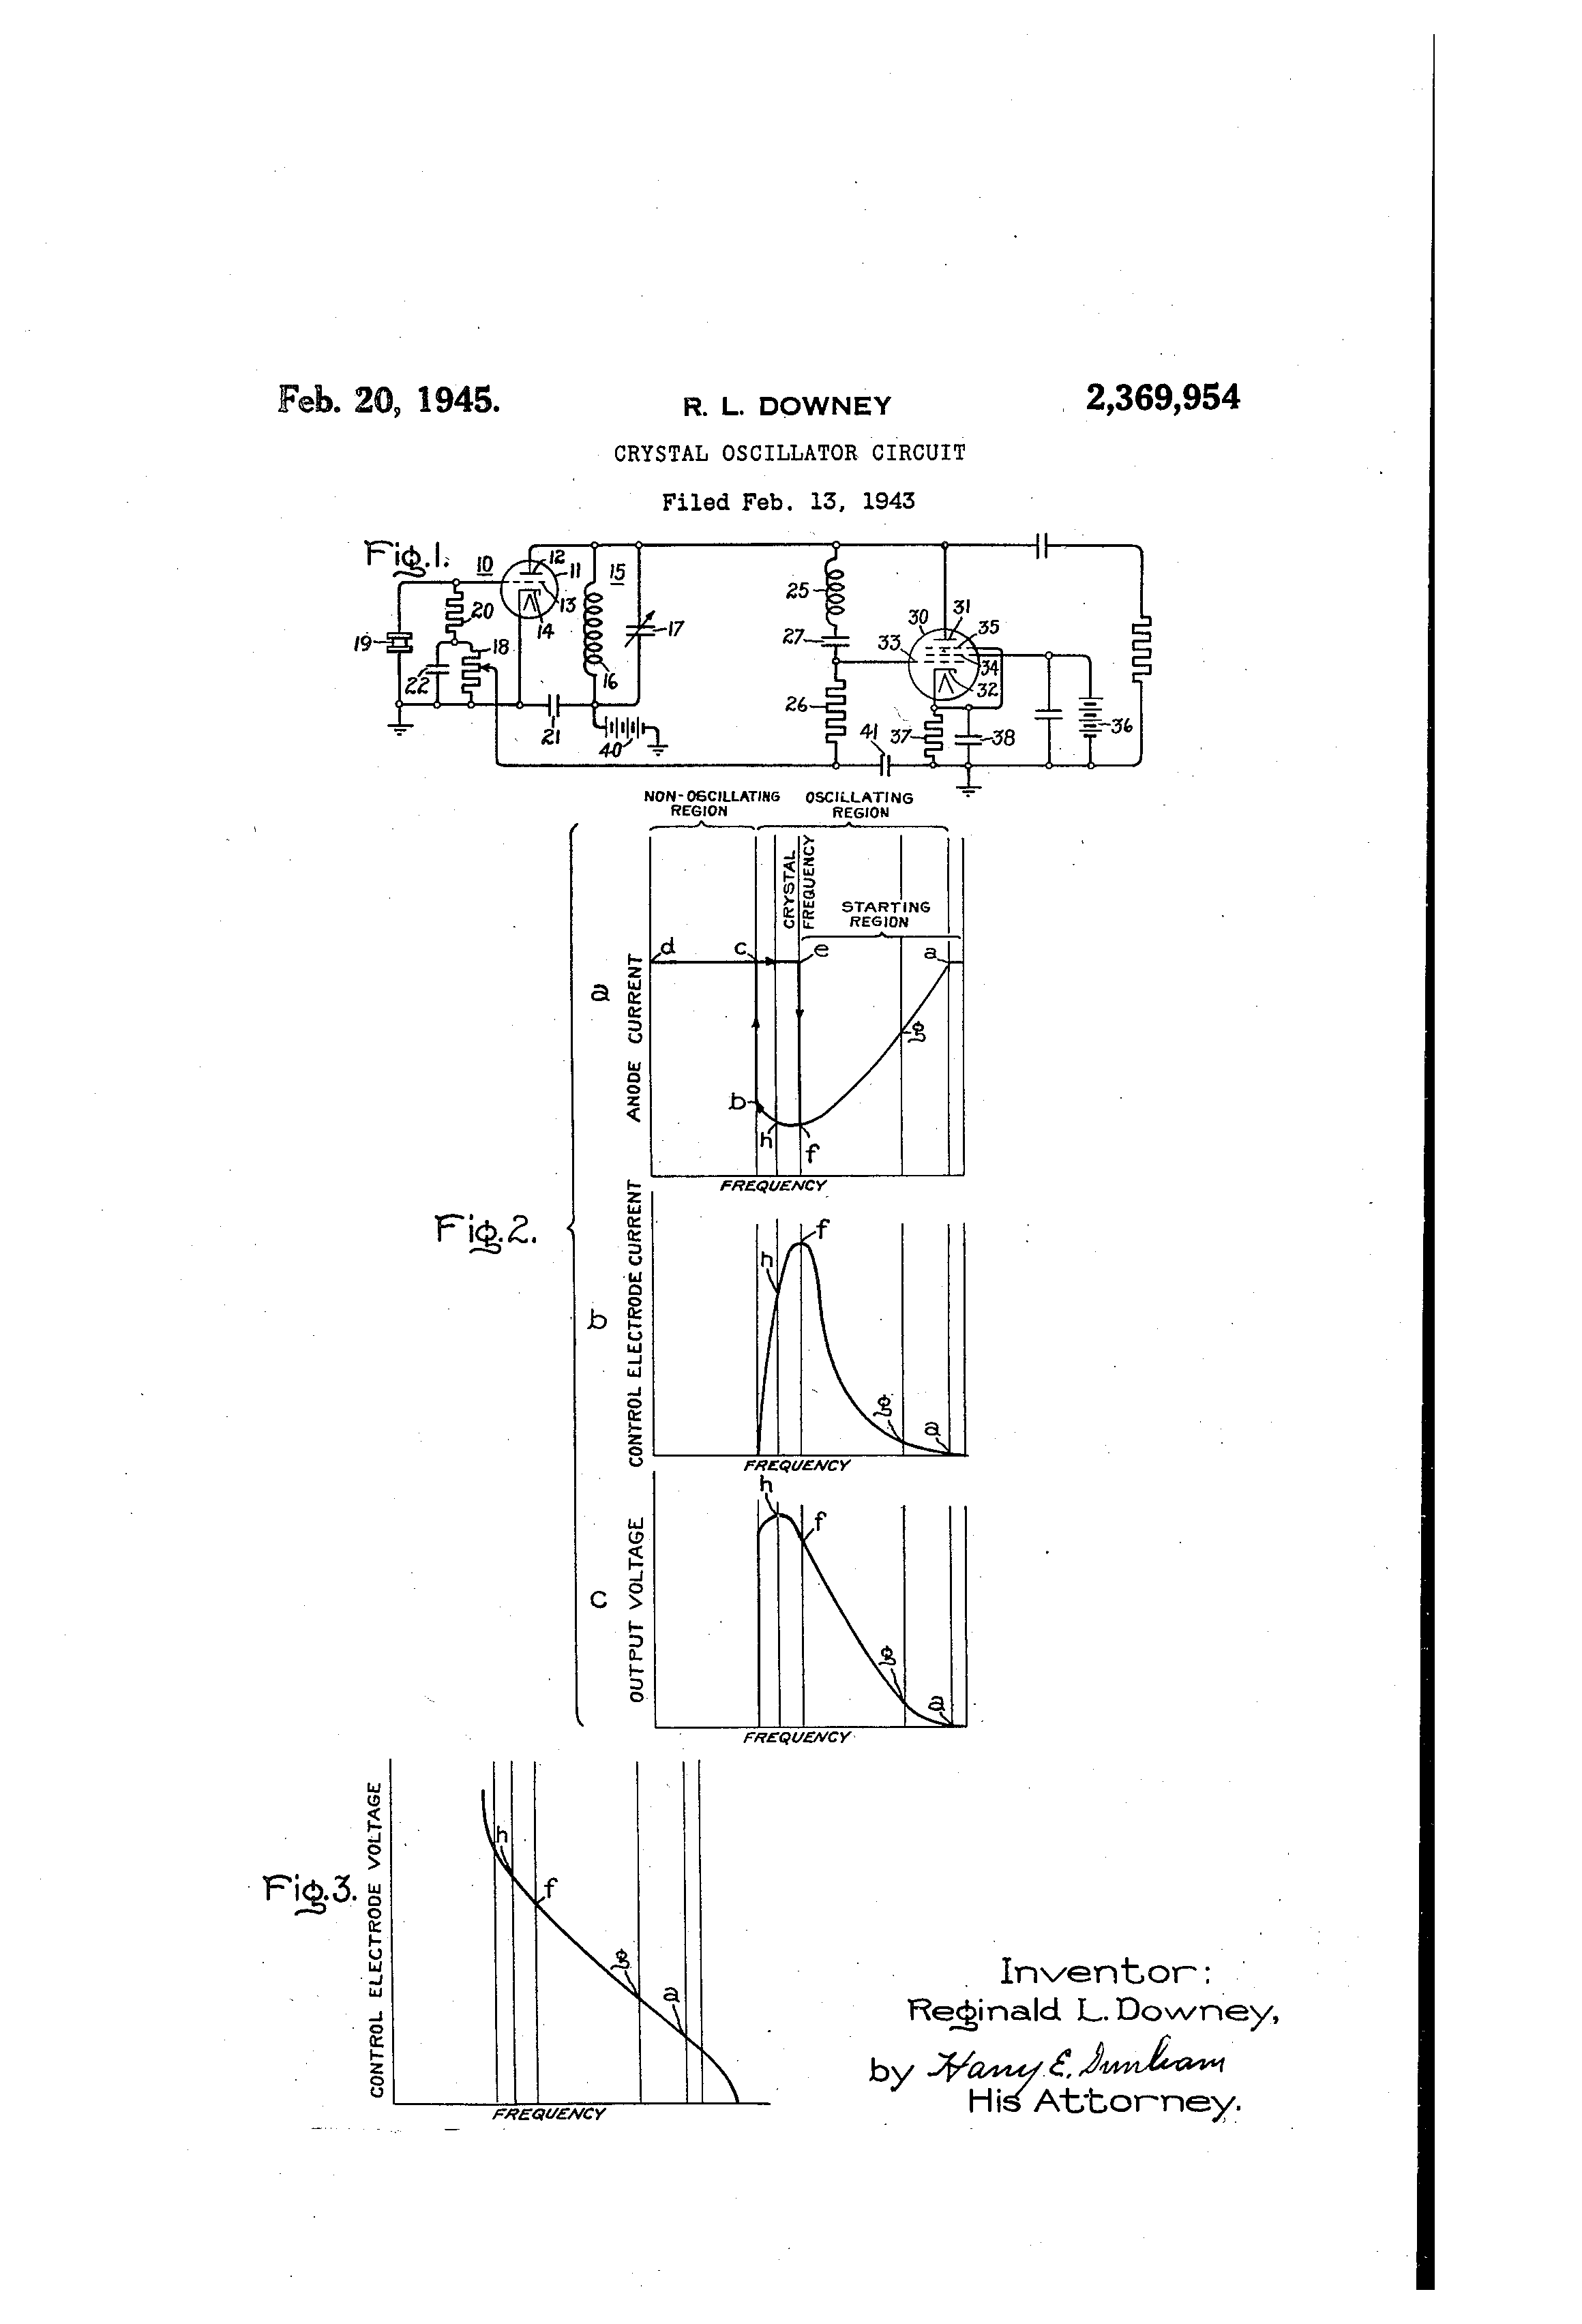 Crystal Oscillator Circuit Schematic Diagram Brevet Us2369954 Google Brevets Patent Drawing